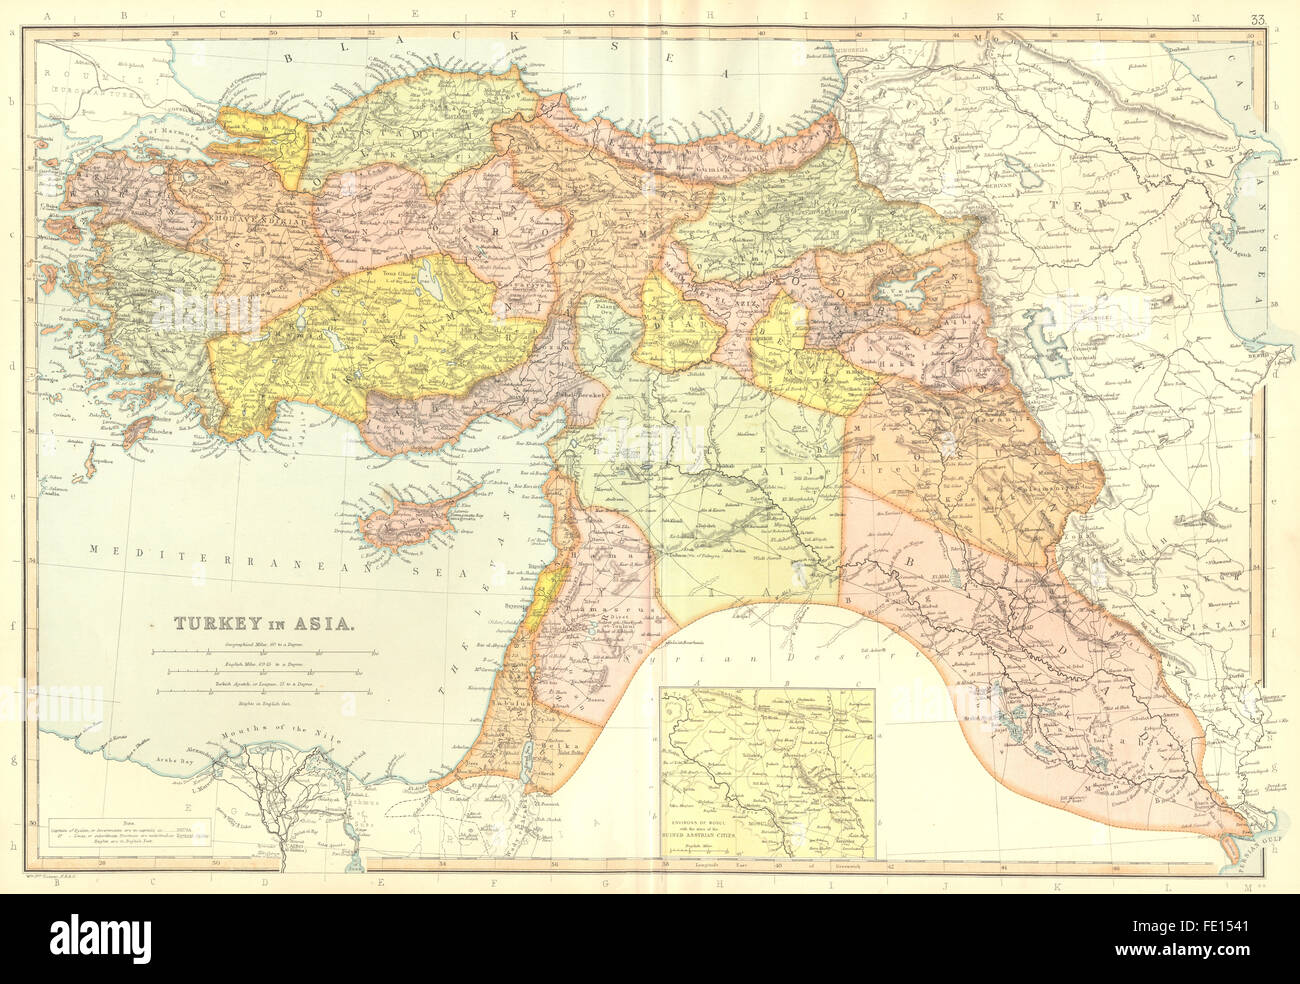 Turkey in asia iraq syria palestineset mosul assyrian cities turkey in asia iraq syria palestineset mosul assyrian cities 1893 map gumiabroncs Gallery